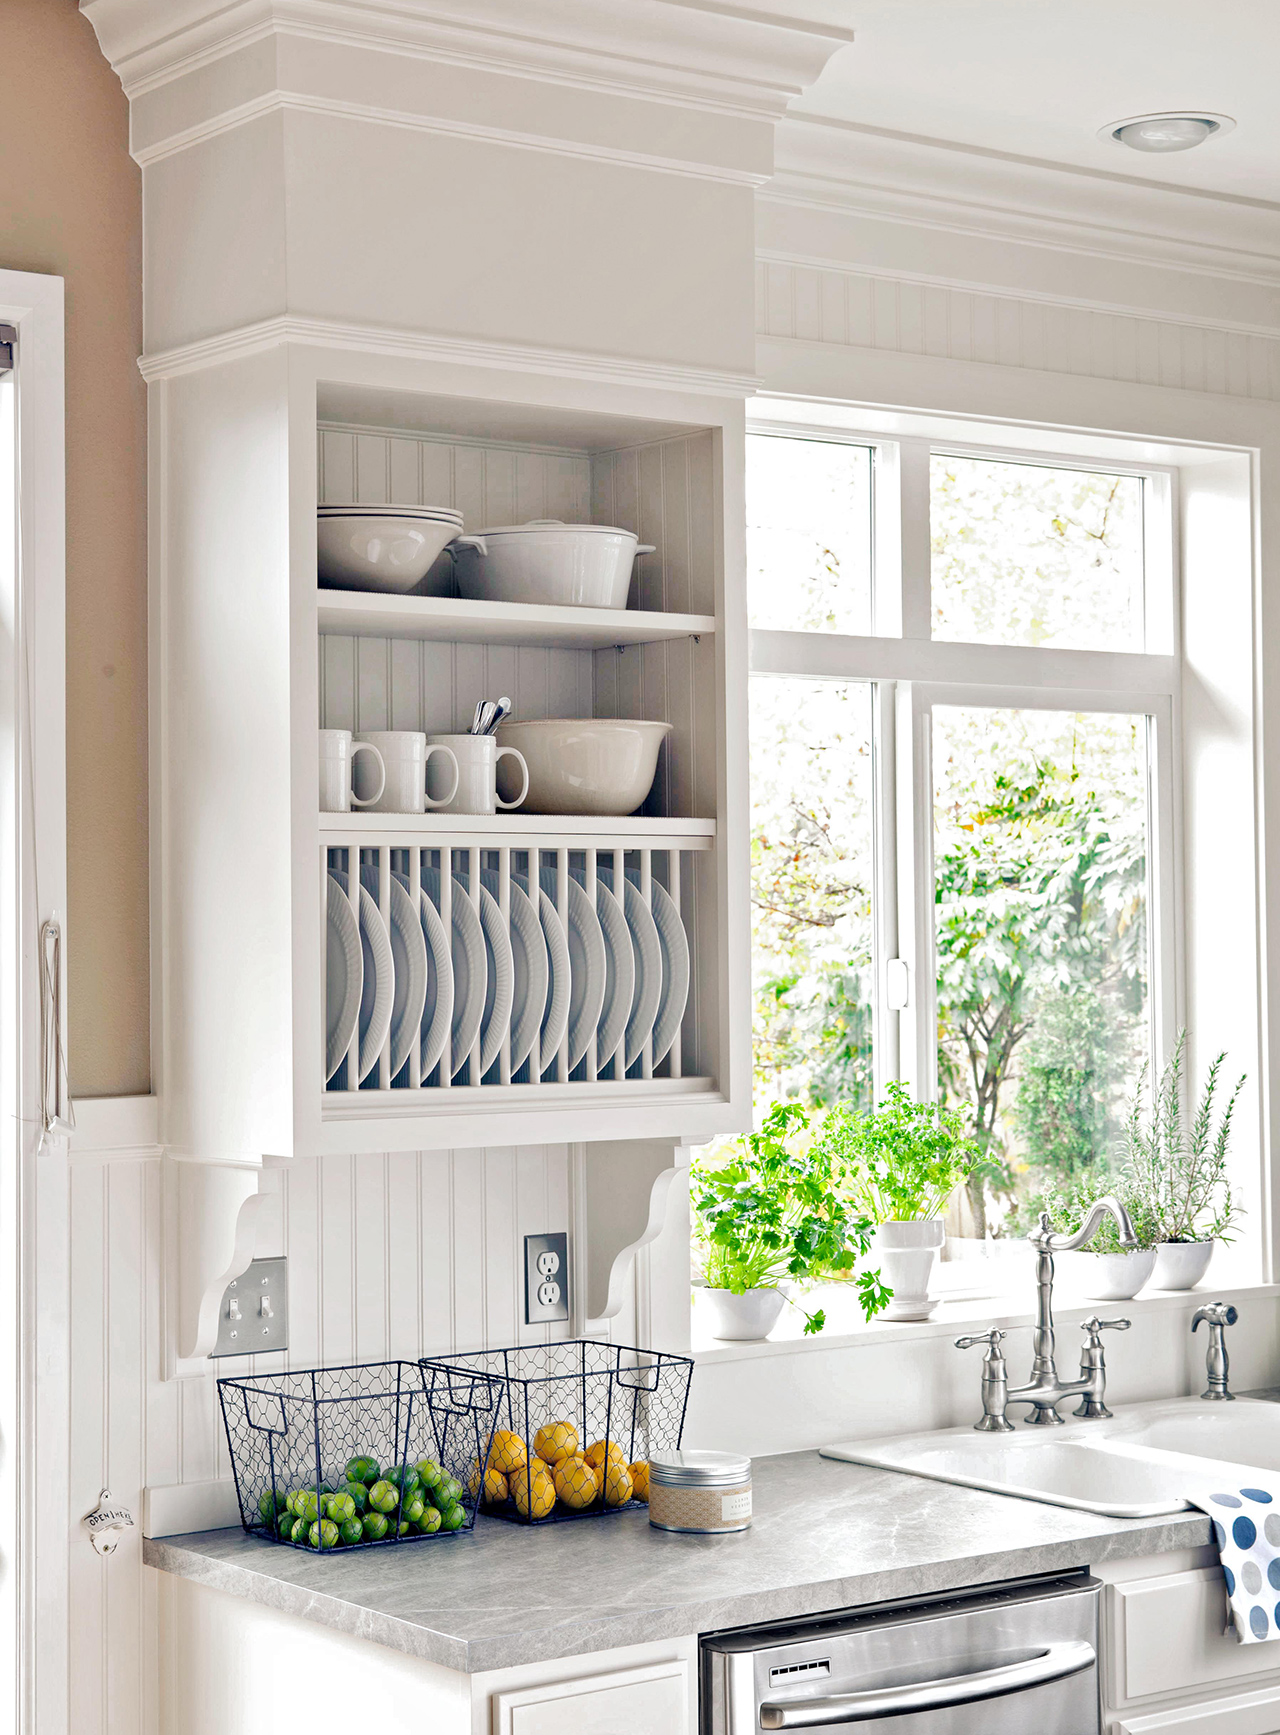 white kitchen with open storage slots for dishes